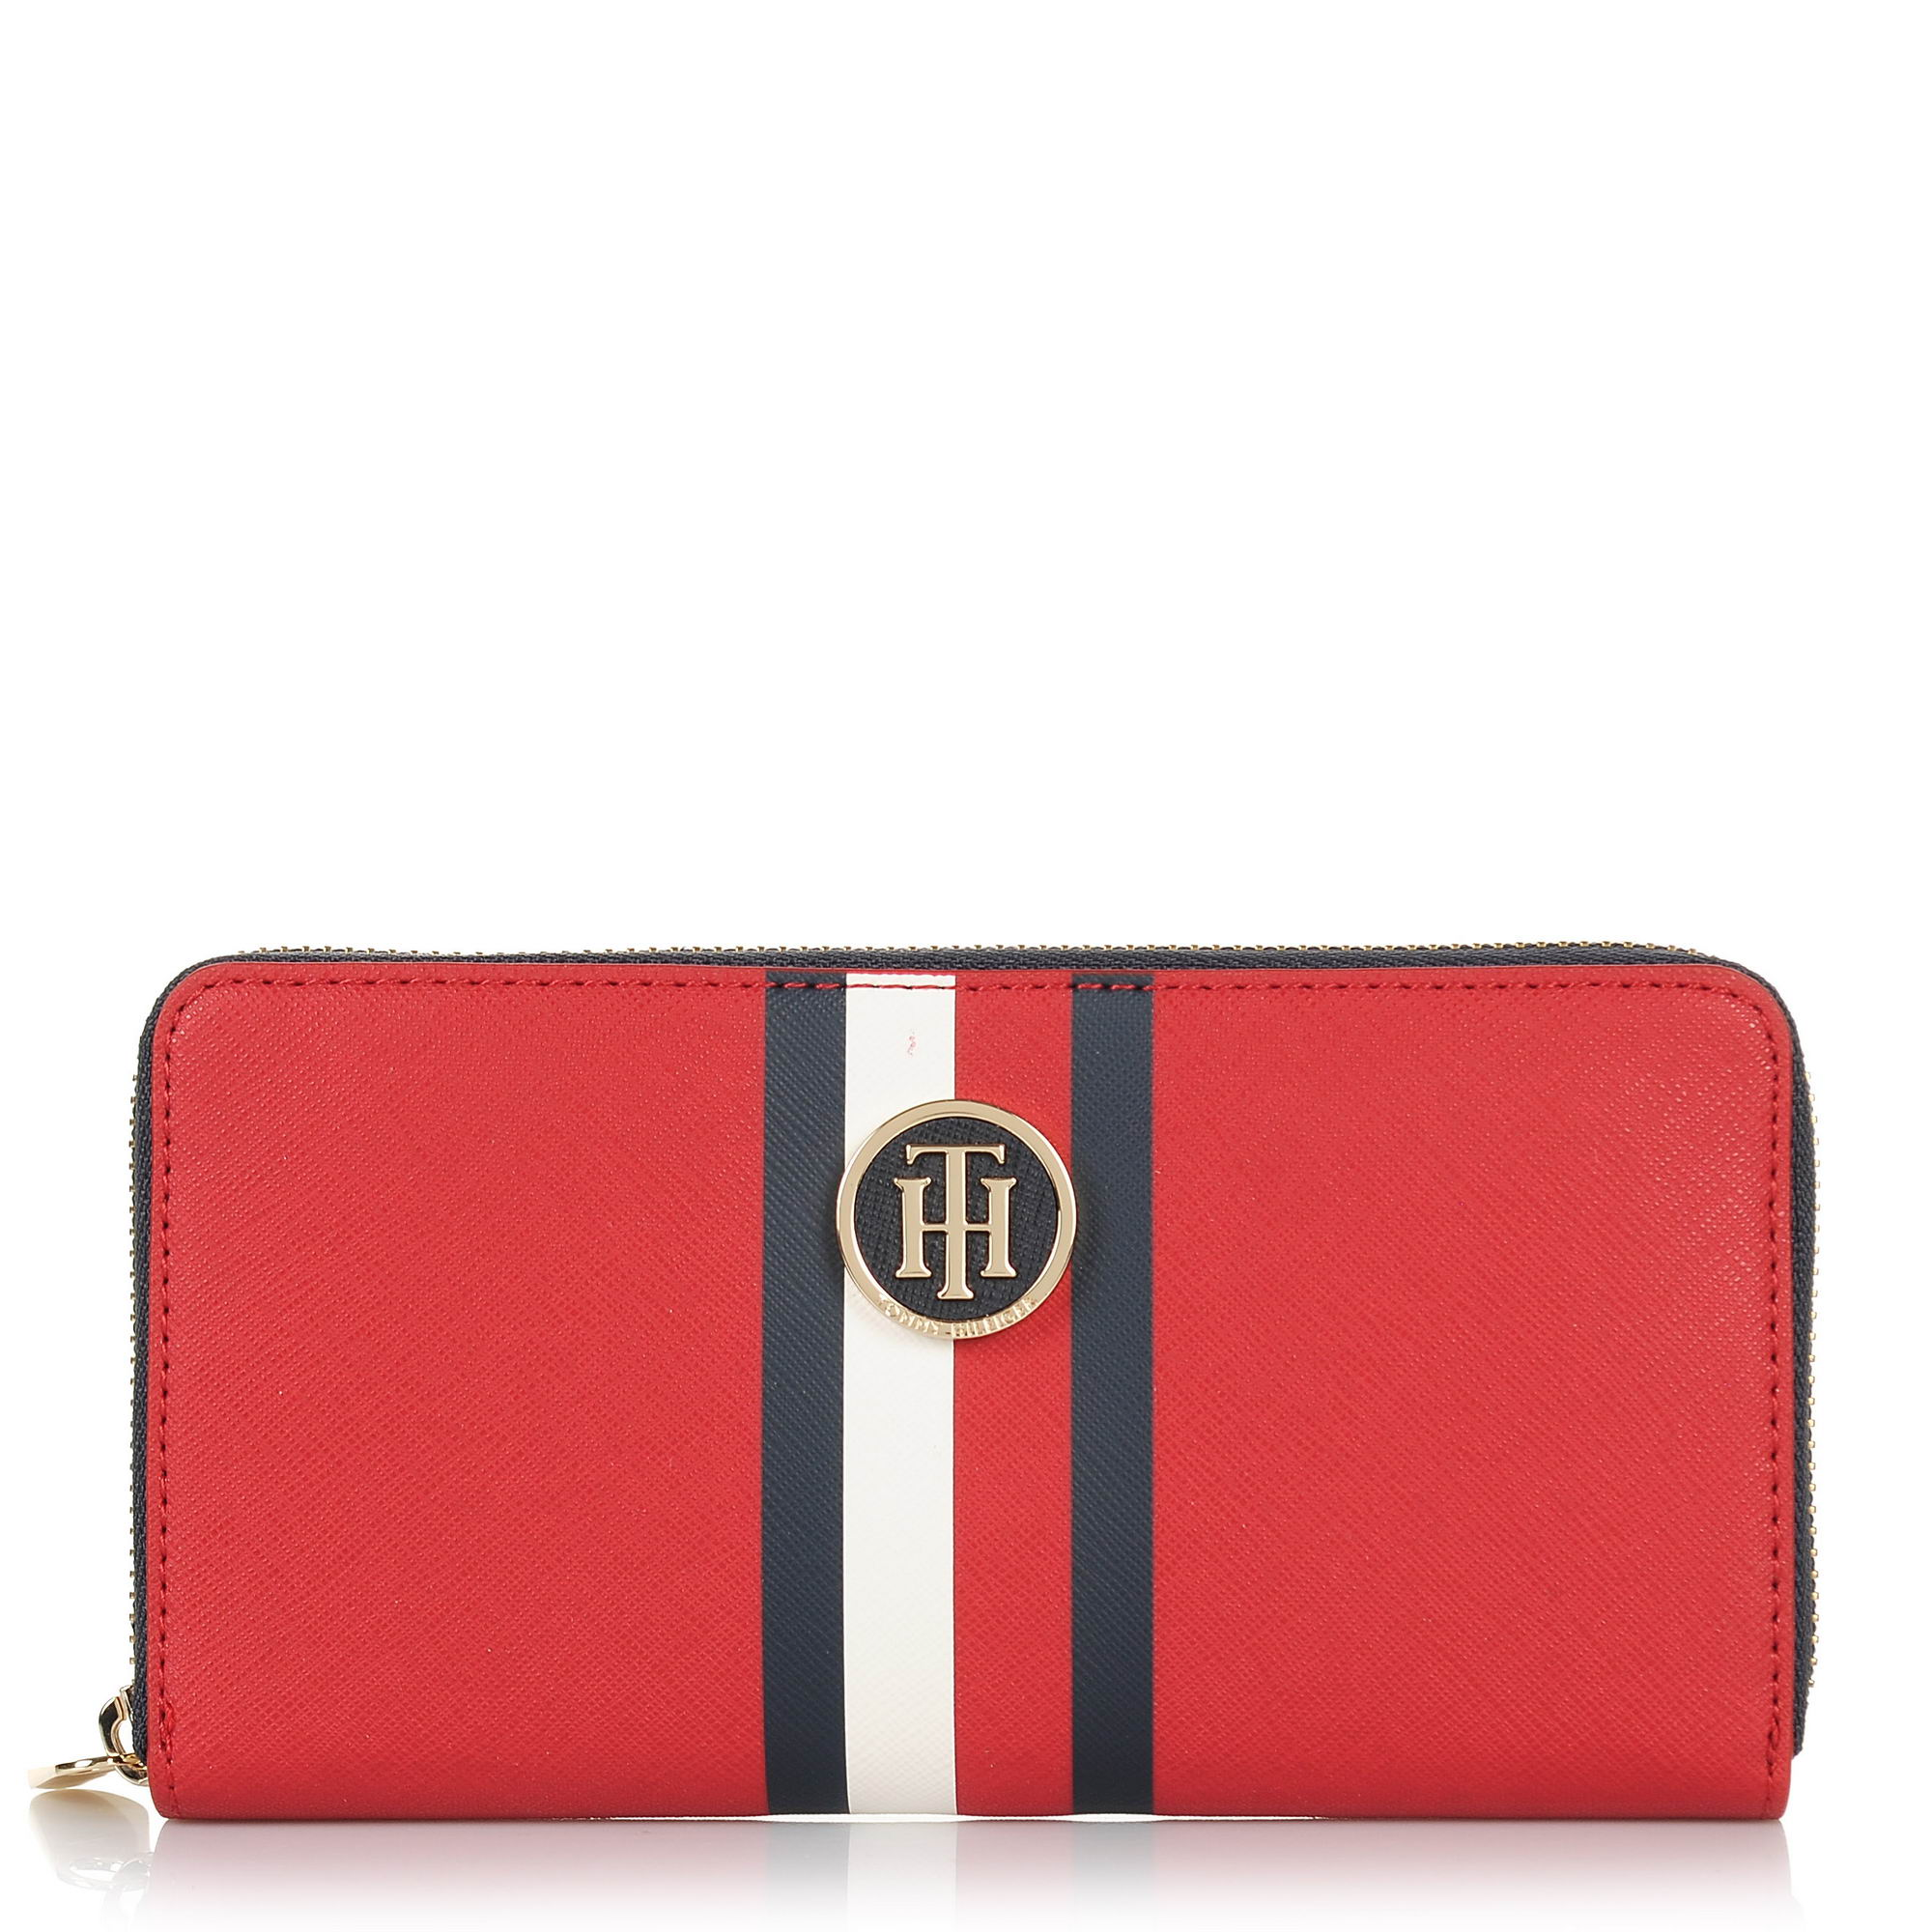 Πορτοφόλι Κασετίνα Tommy Hilfiger Honey Lrg Za Wallet AW0AW05761